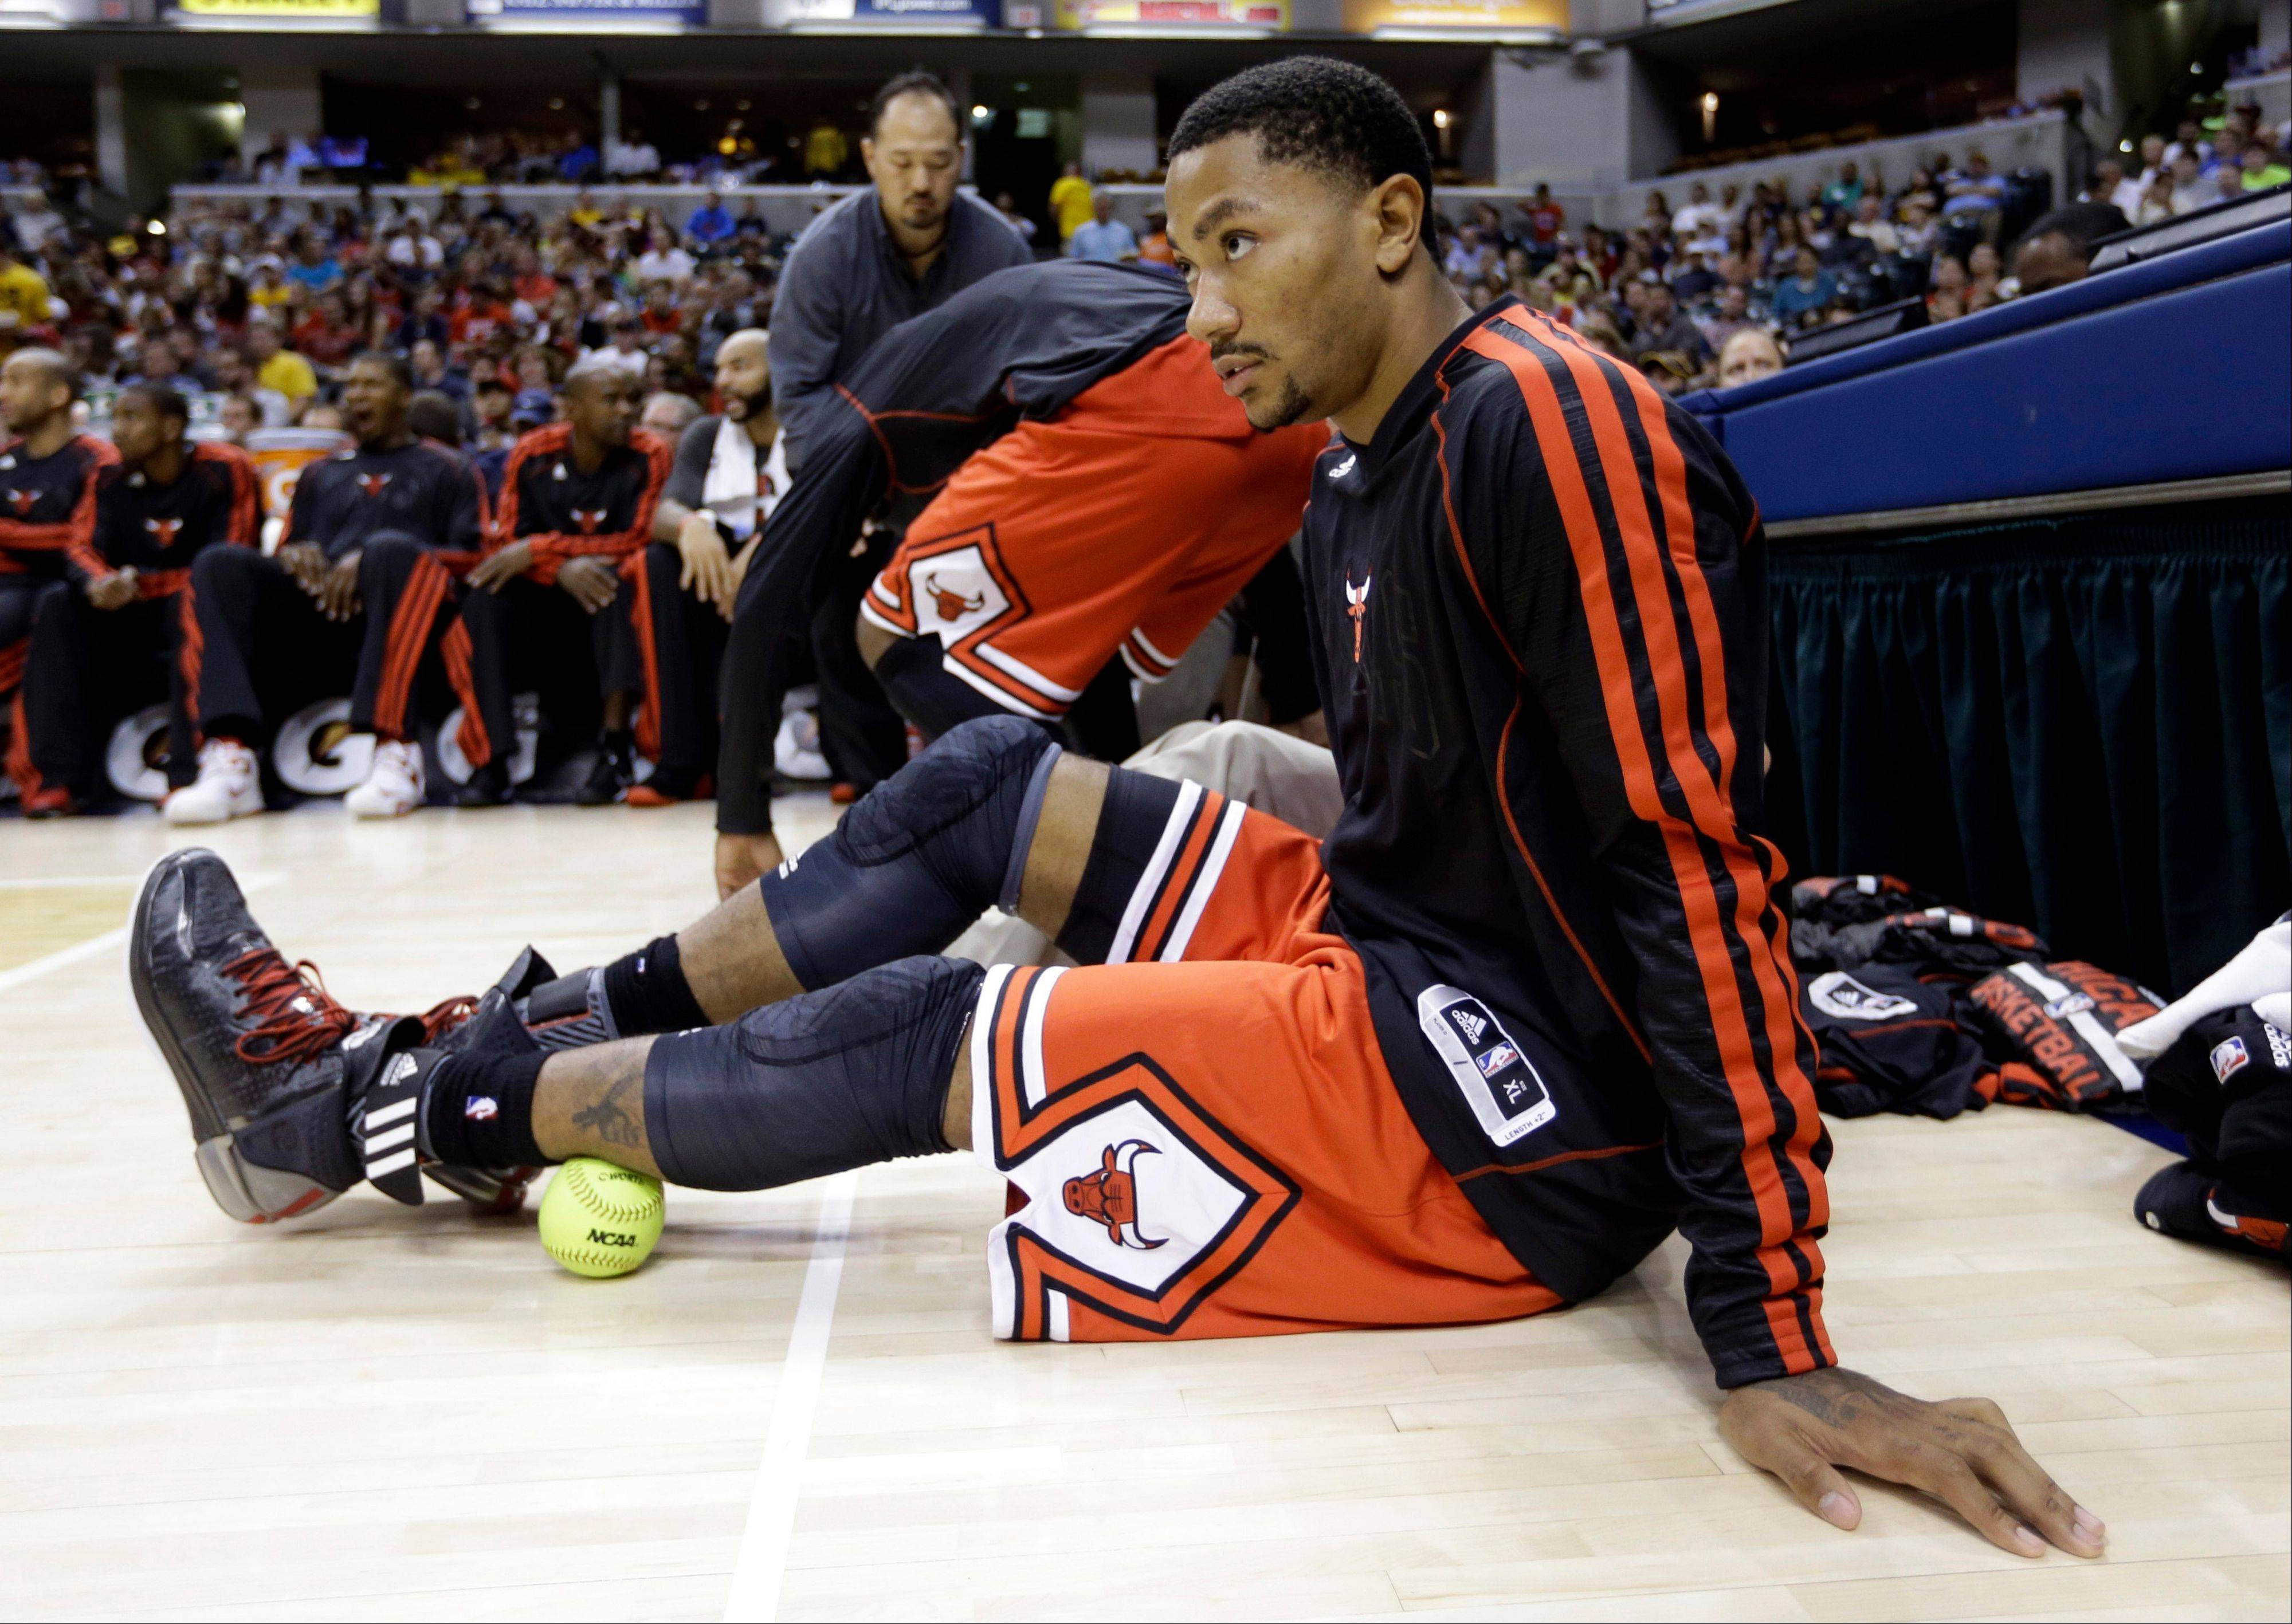 Bulls guard Derrick Rose uses a softball to loosen up a muscle as he sits in front of the bench in the first half Saturday night.